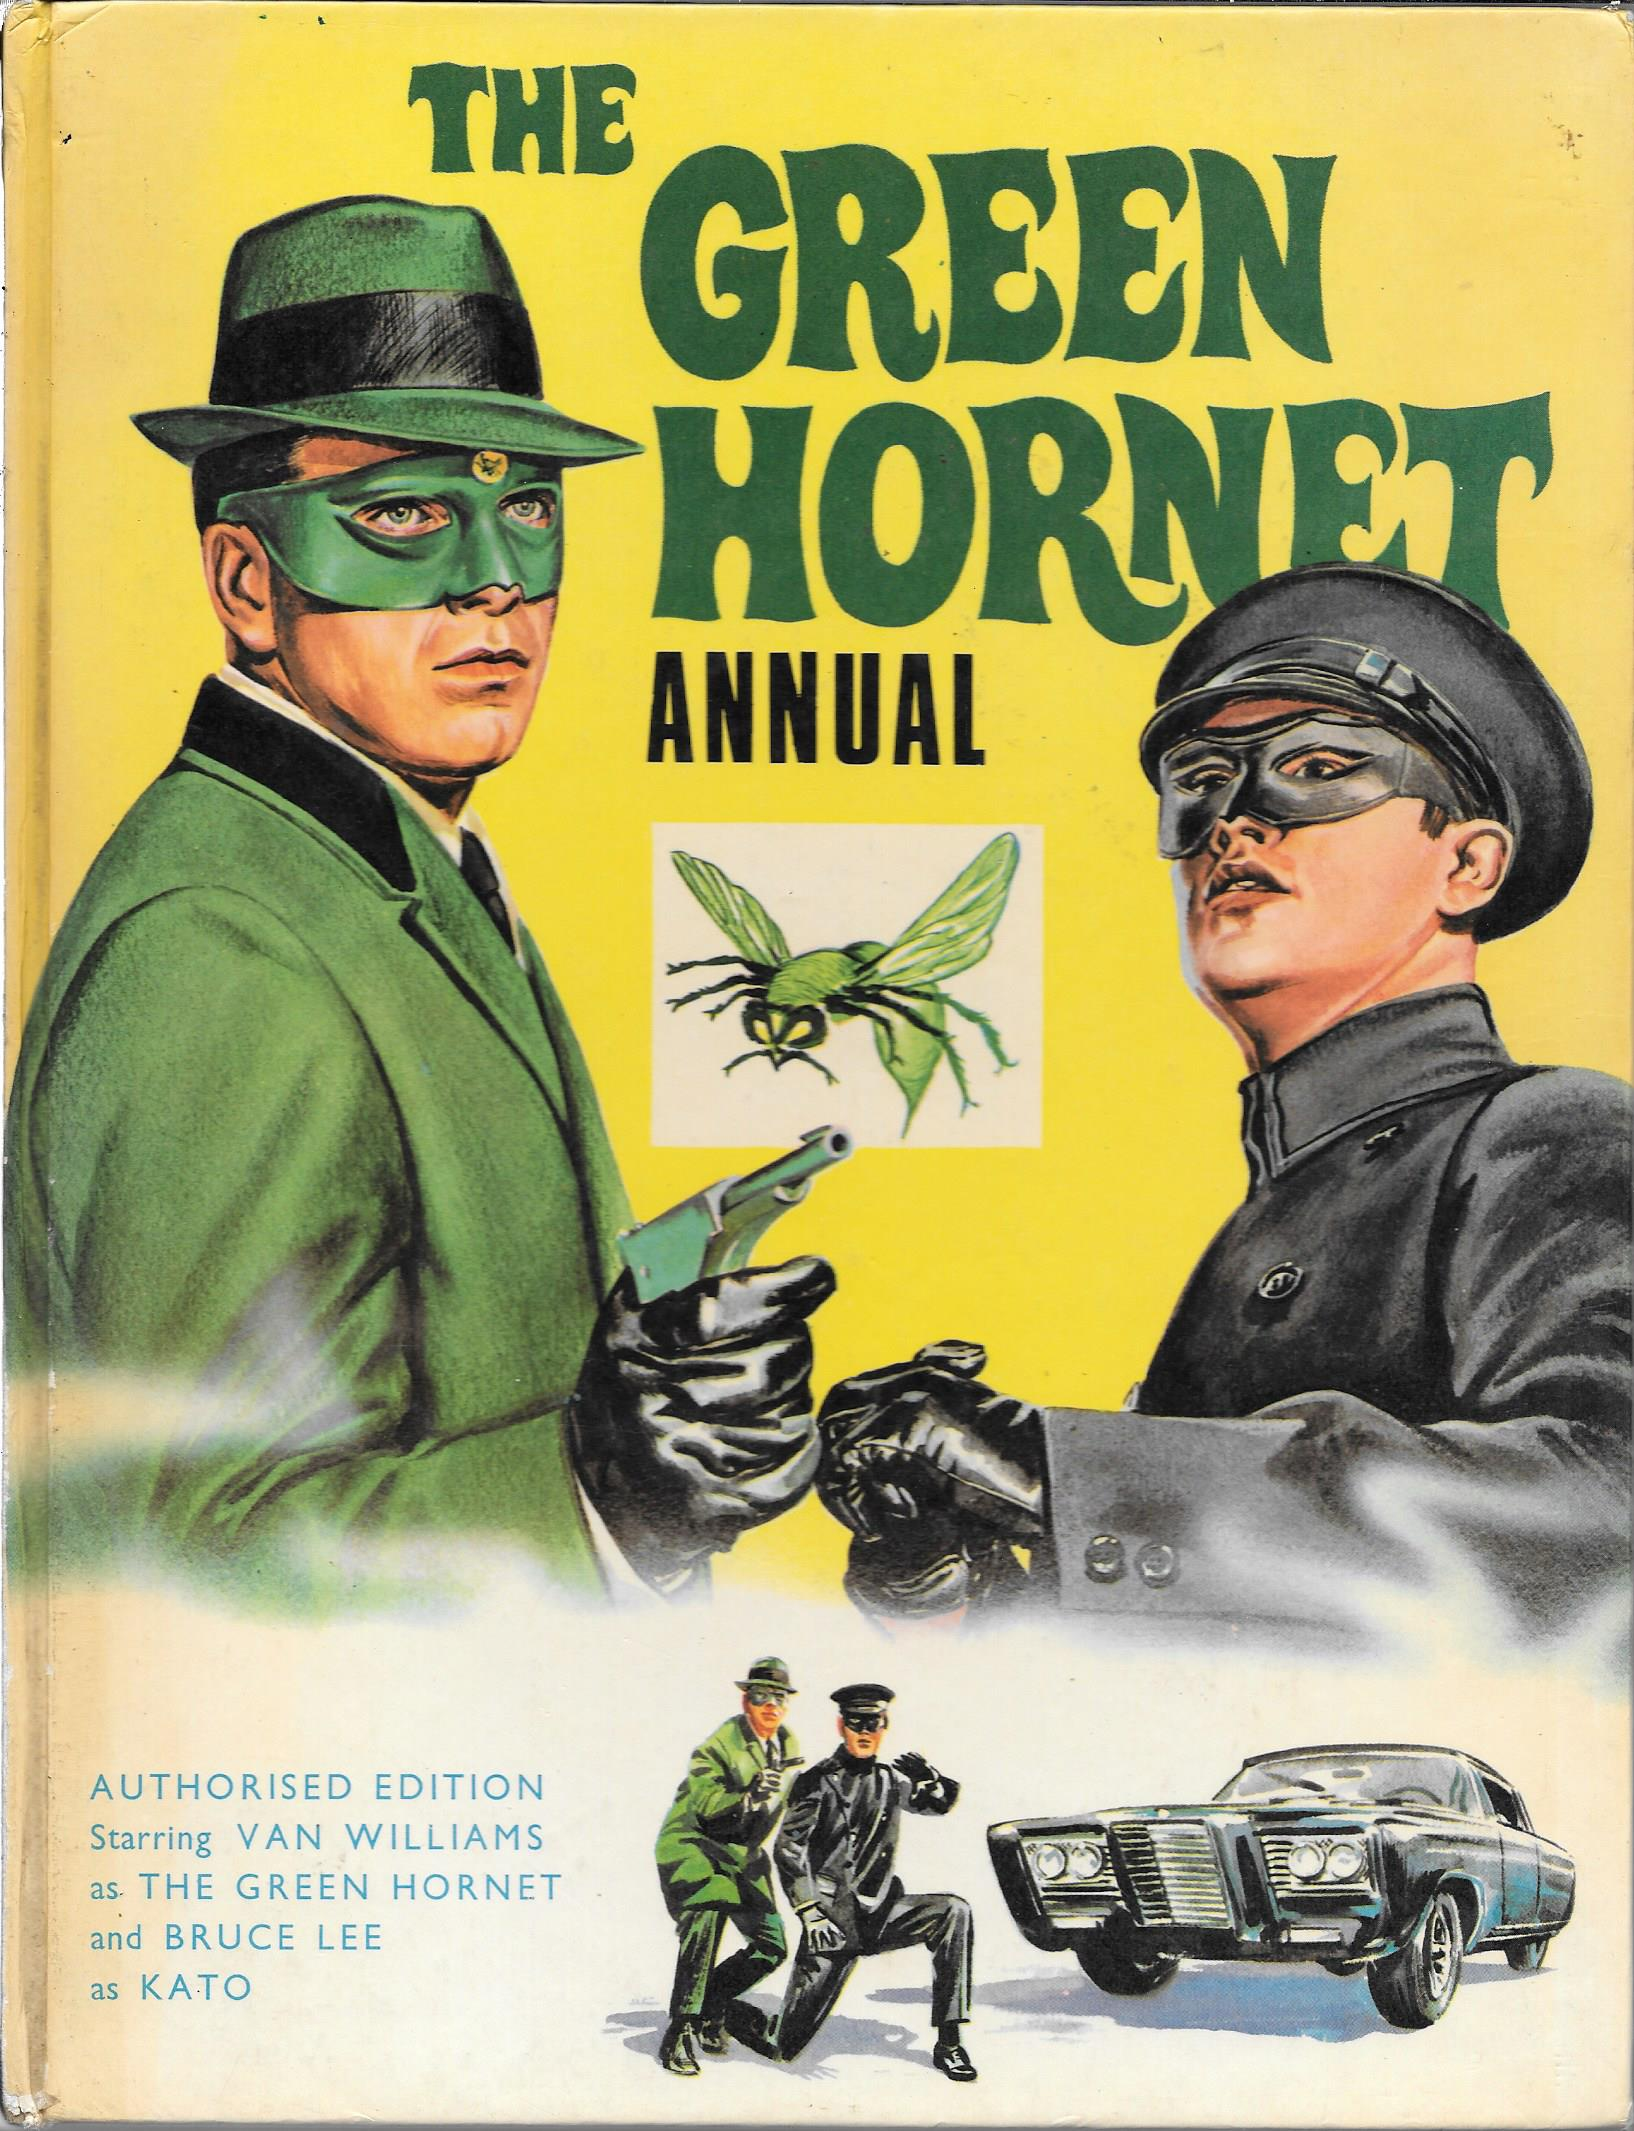 THE GREEN HORNET UK ANNUAL 1967 BRUCE LEE Vintage and Modern Magazines - Vintage Magazines